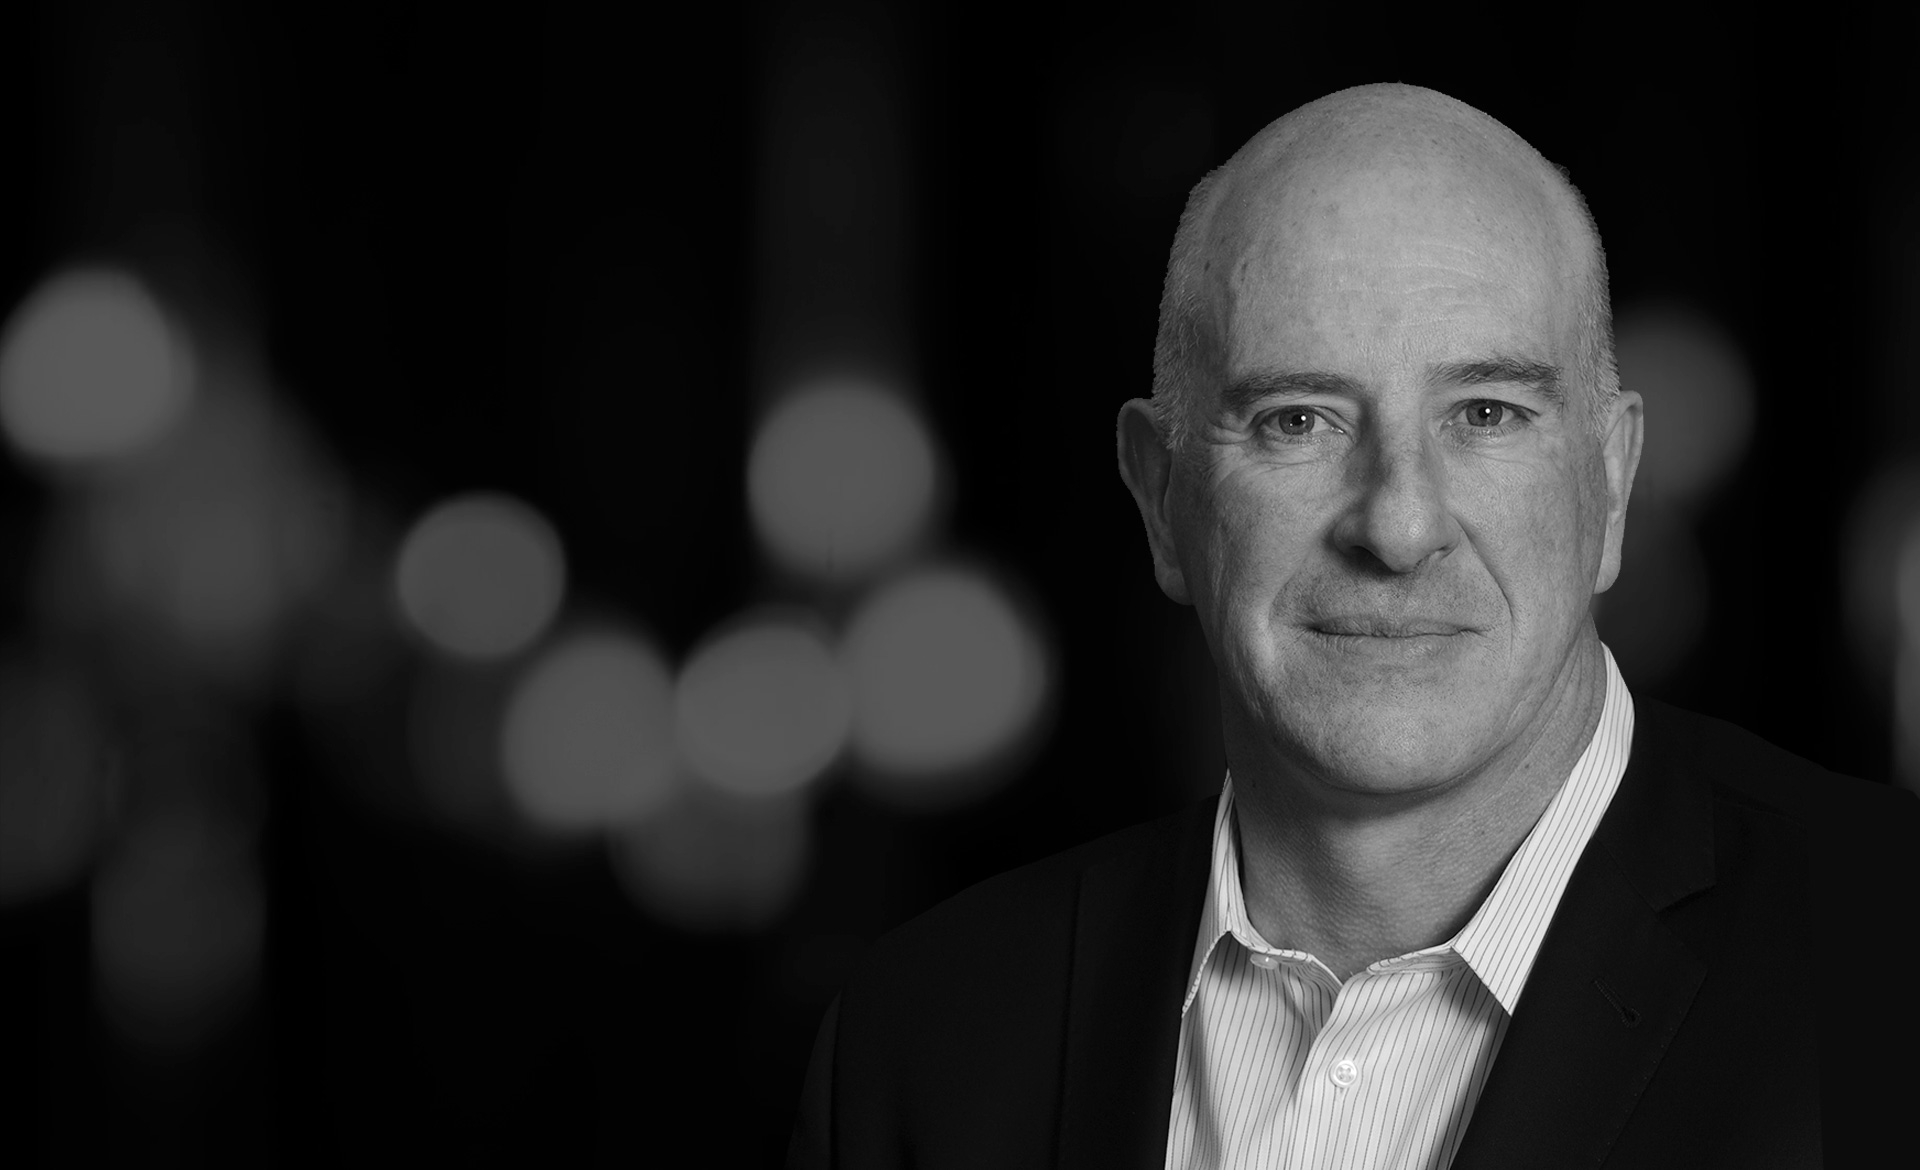 """""""I've worked with Sayle Noble over many years. I love the rapid traction they achieve in terms of market visibility and reputation for their clients."""" - John Quirk, Director, Howard & Company"""